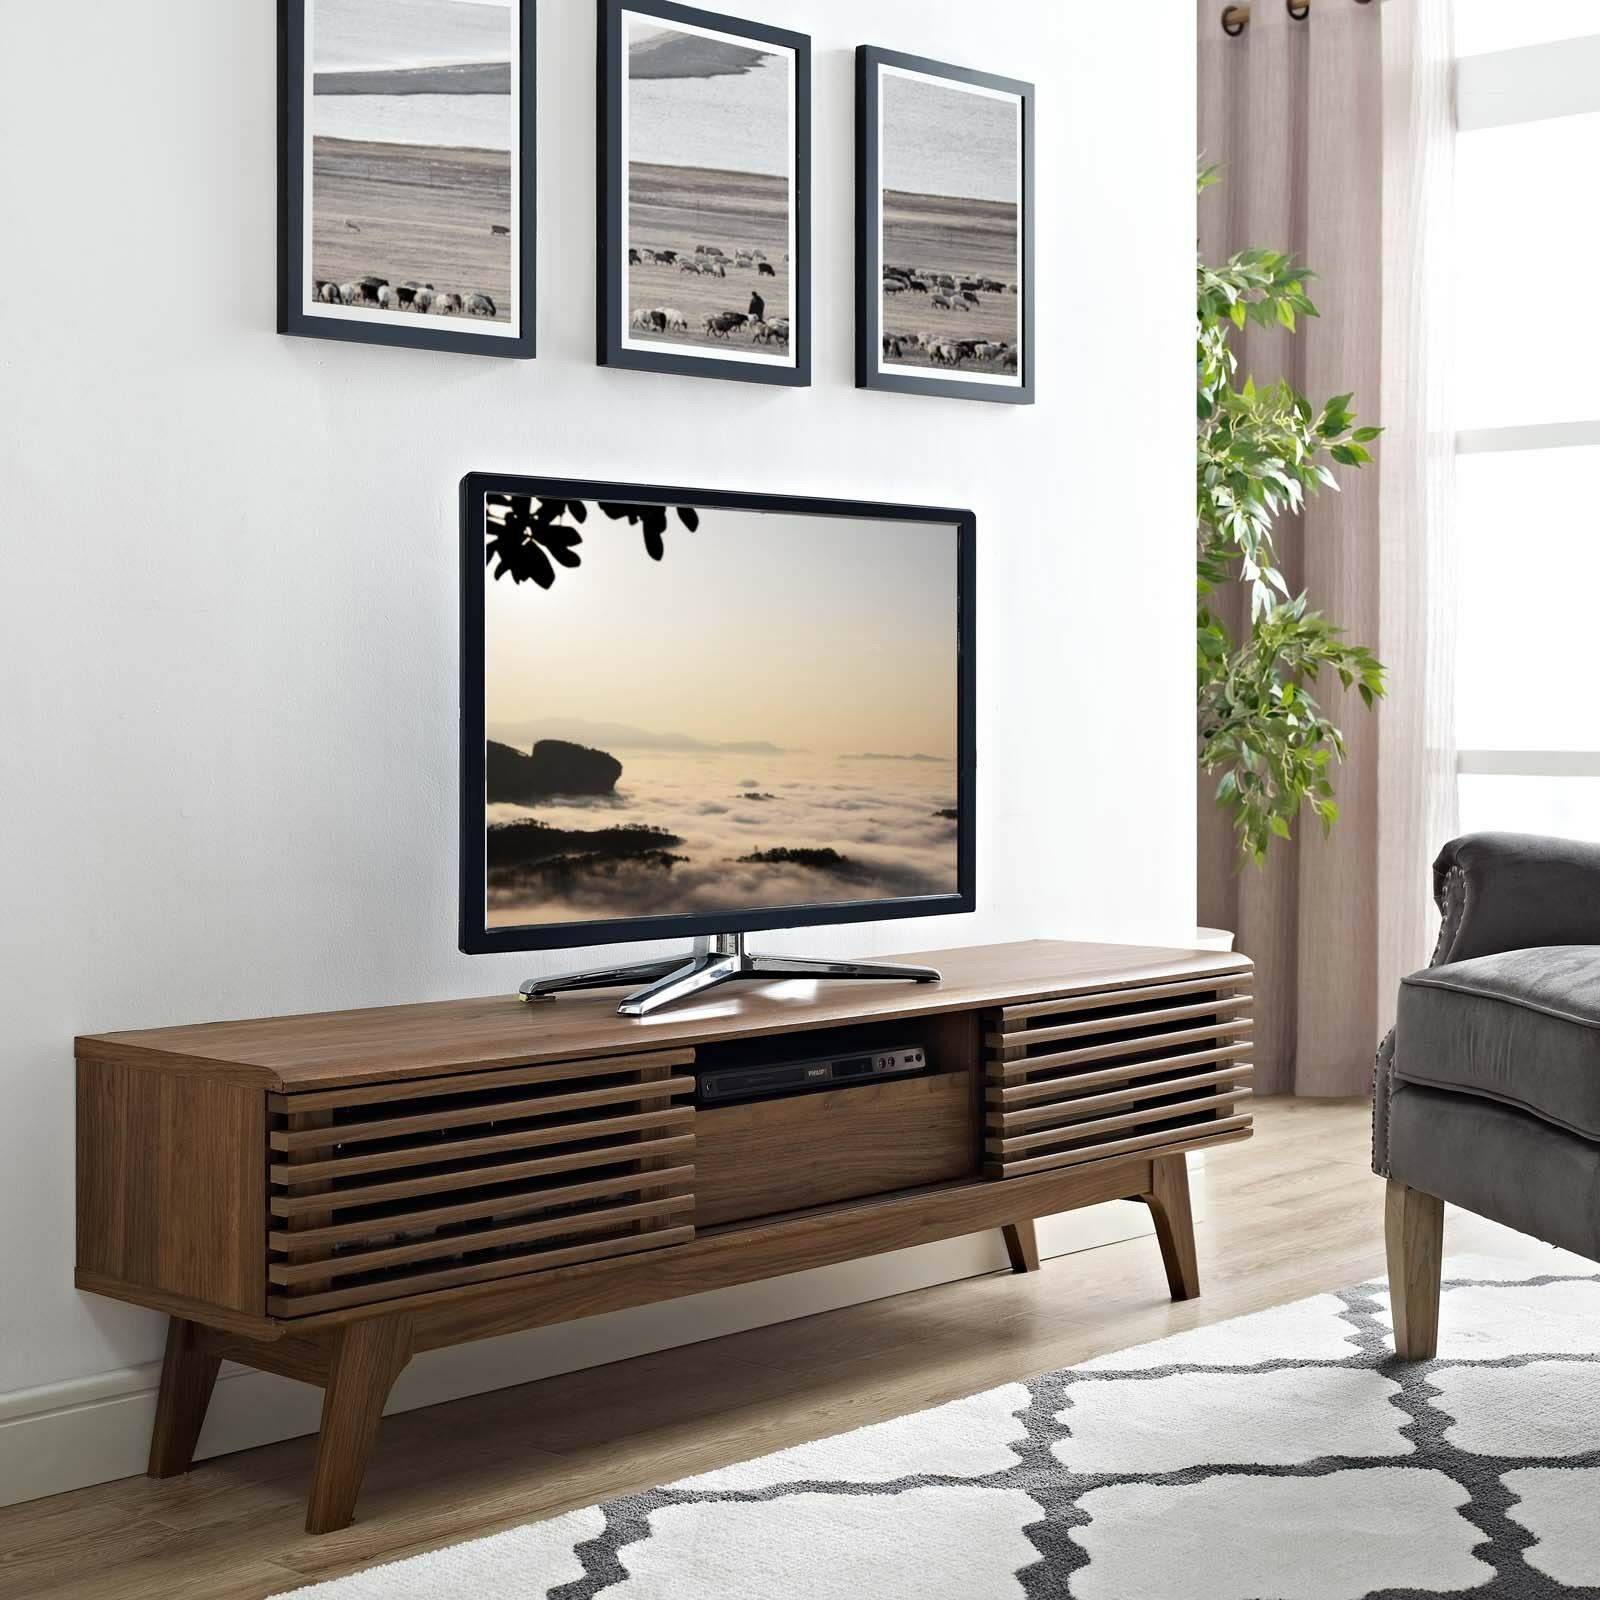 Details About Mid Century Modern Walnut Wood Low Profile 59 Tv Stand Media Center Console